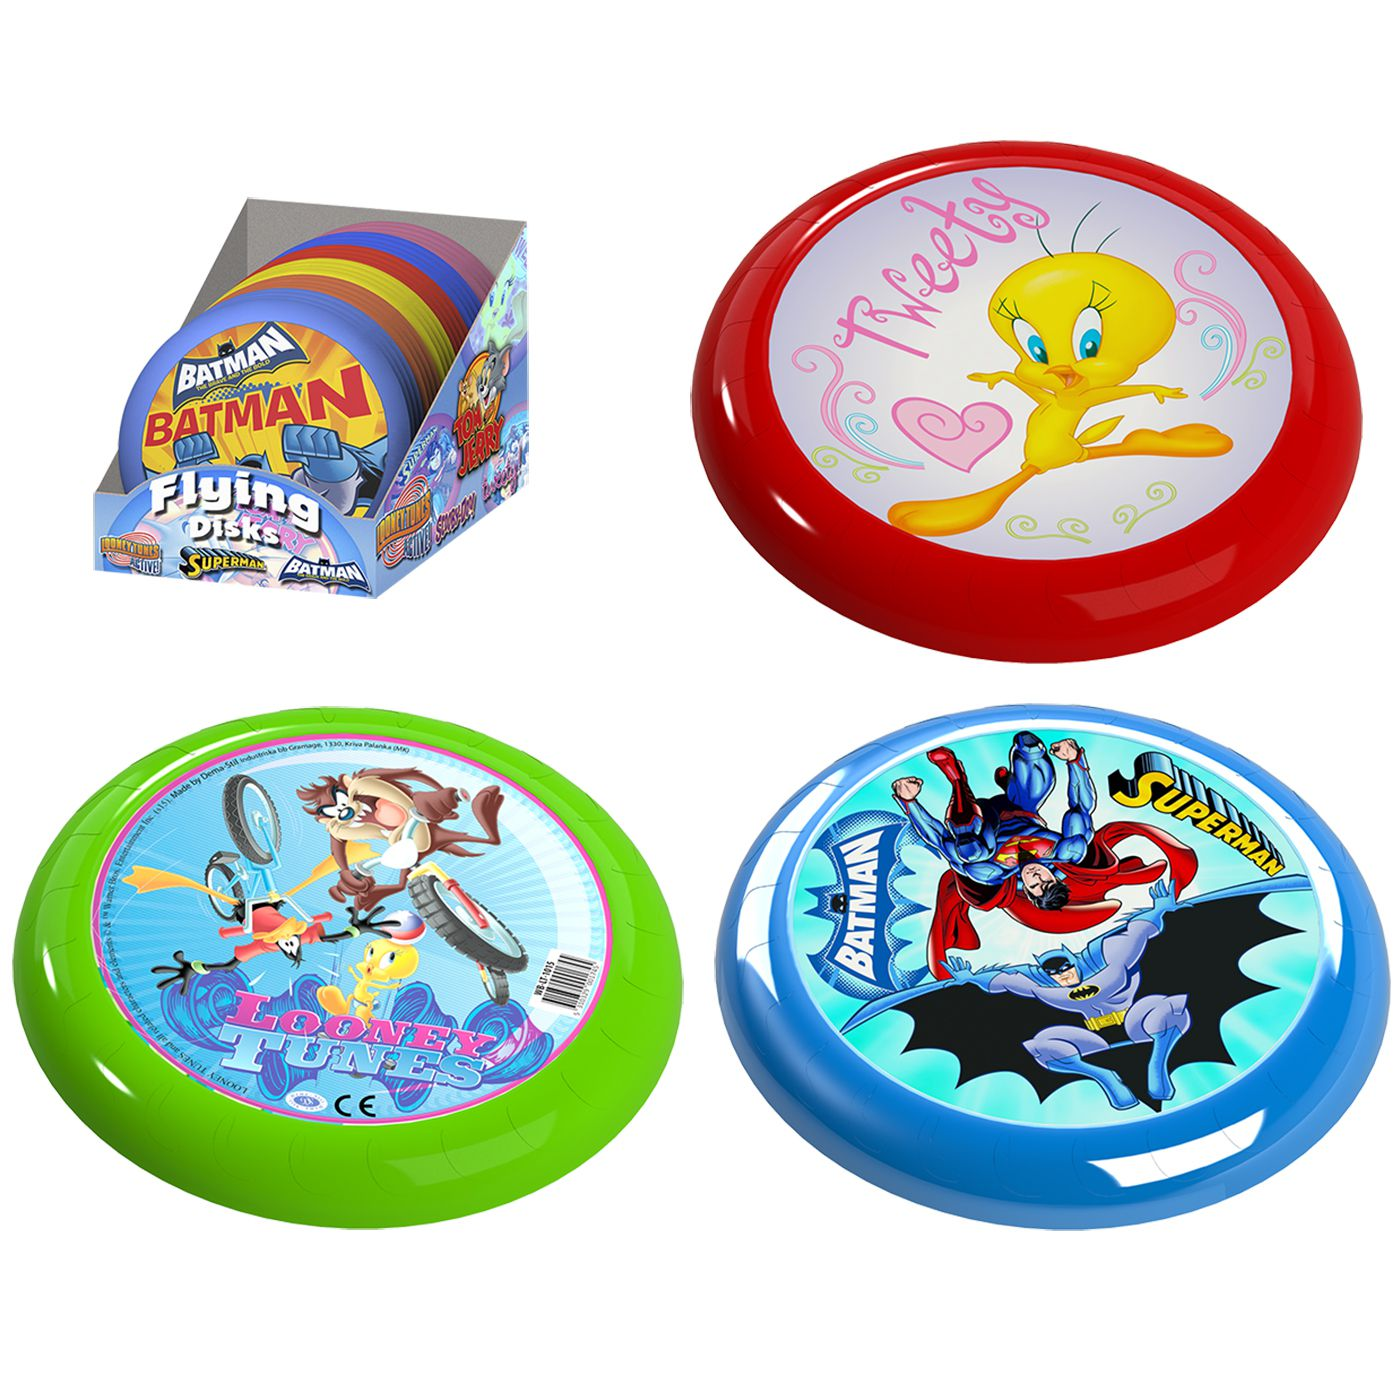 ΦΡΙΣΜΠΙ TWEETY, LOONEY TUNES, SUPERMAN & BATMAN Φ 20cm